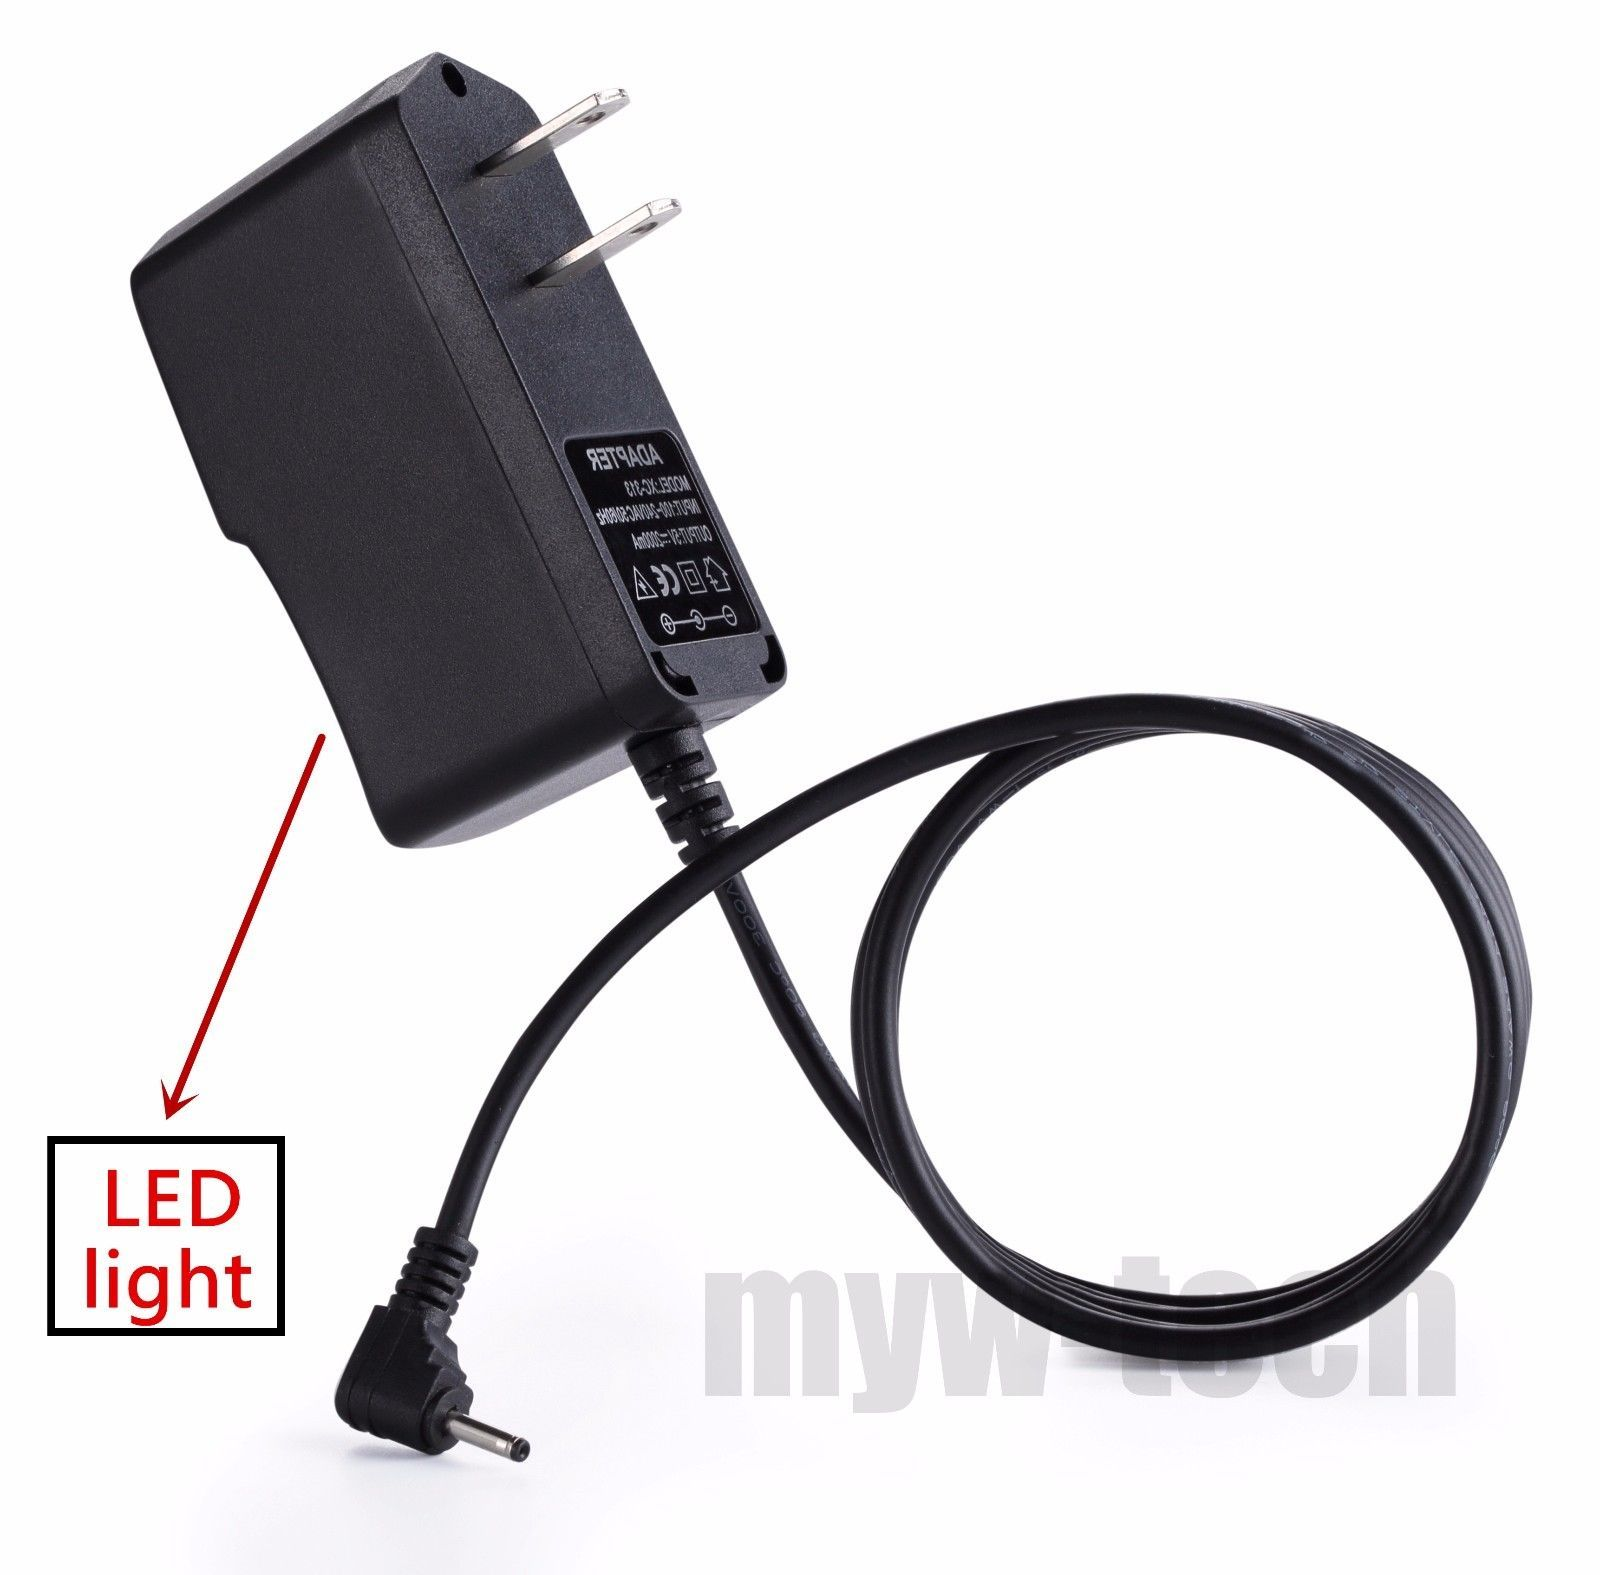 $4 99 - 2A Ac/Dc Wall Charger Power Supply Adapter For